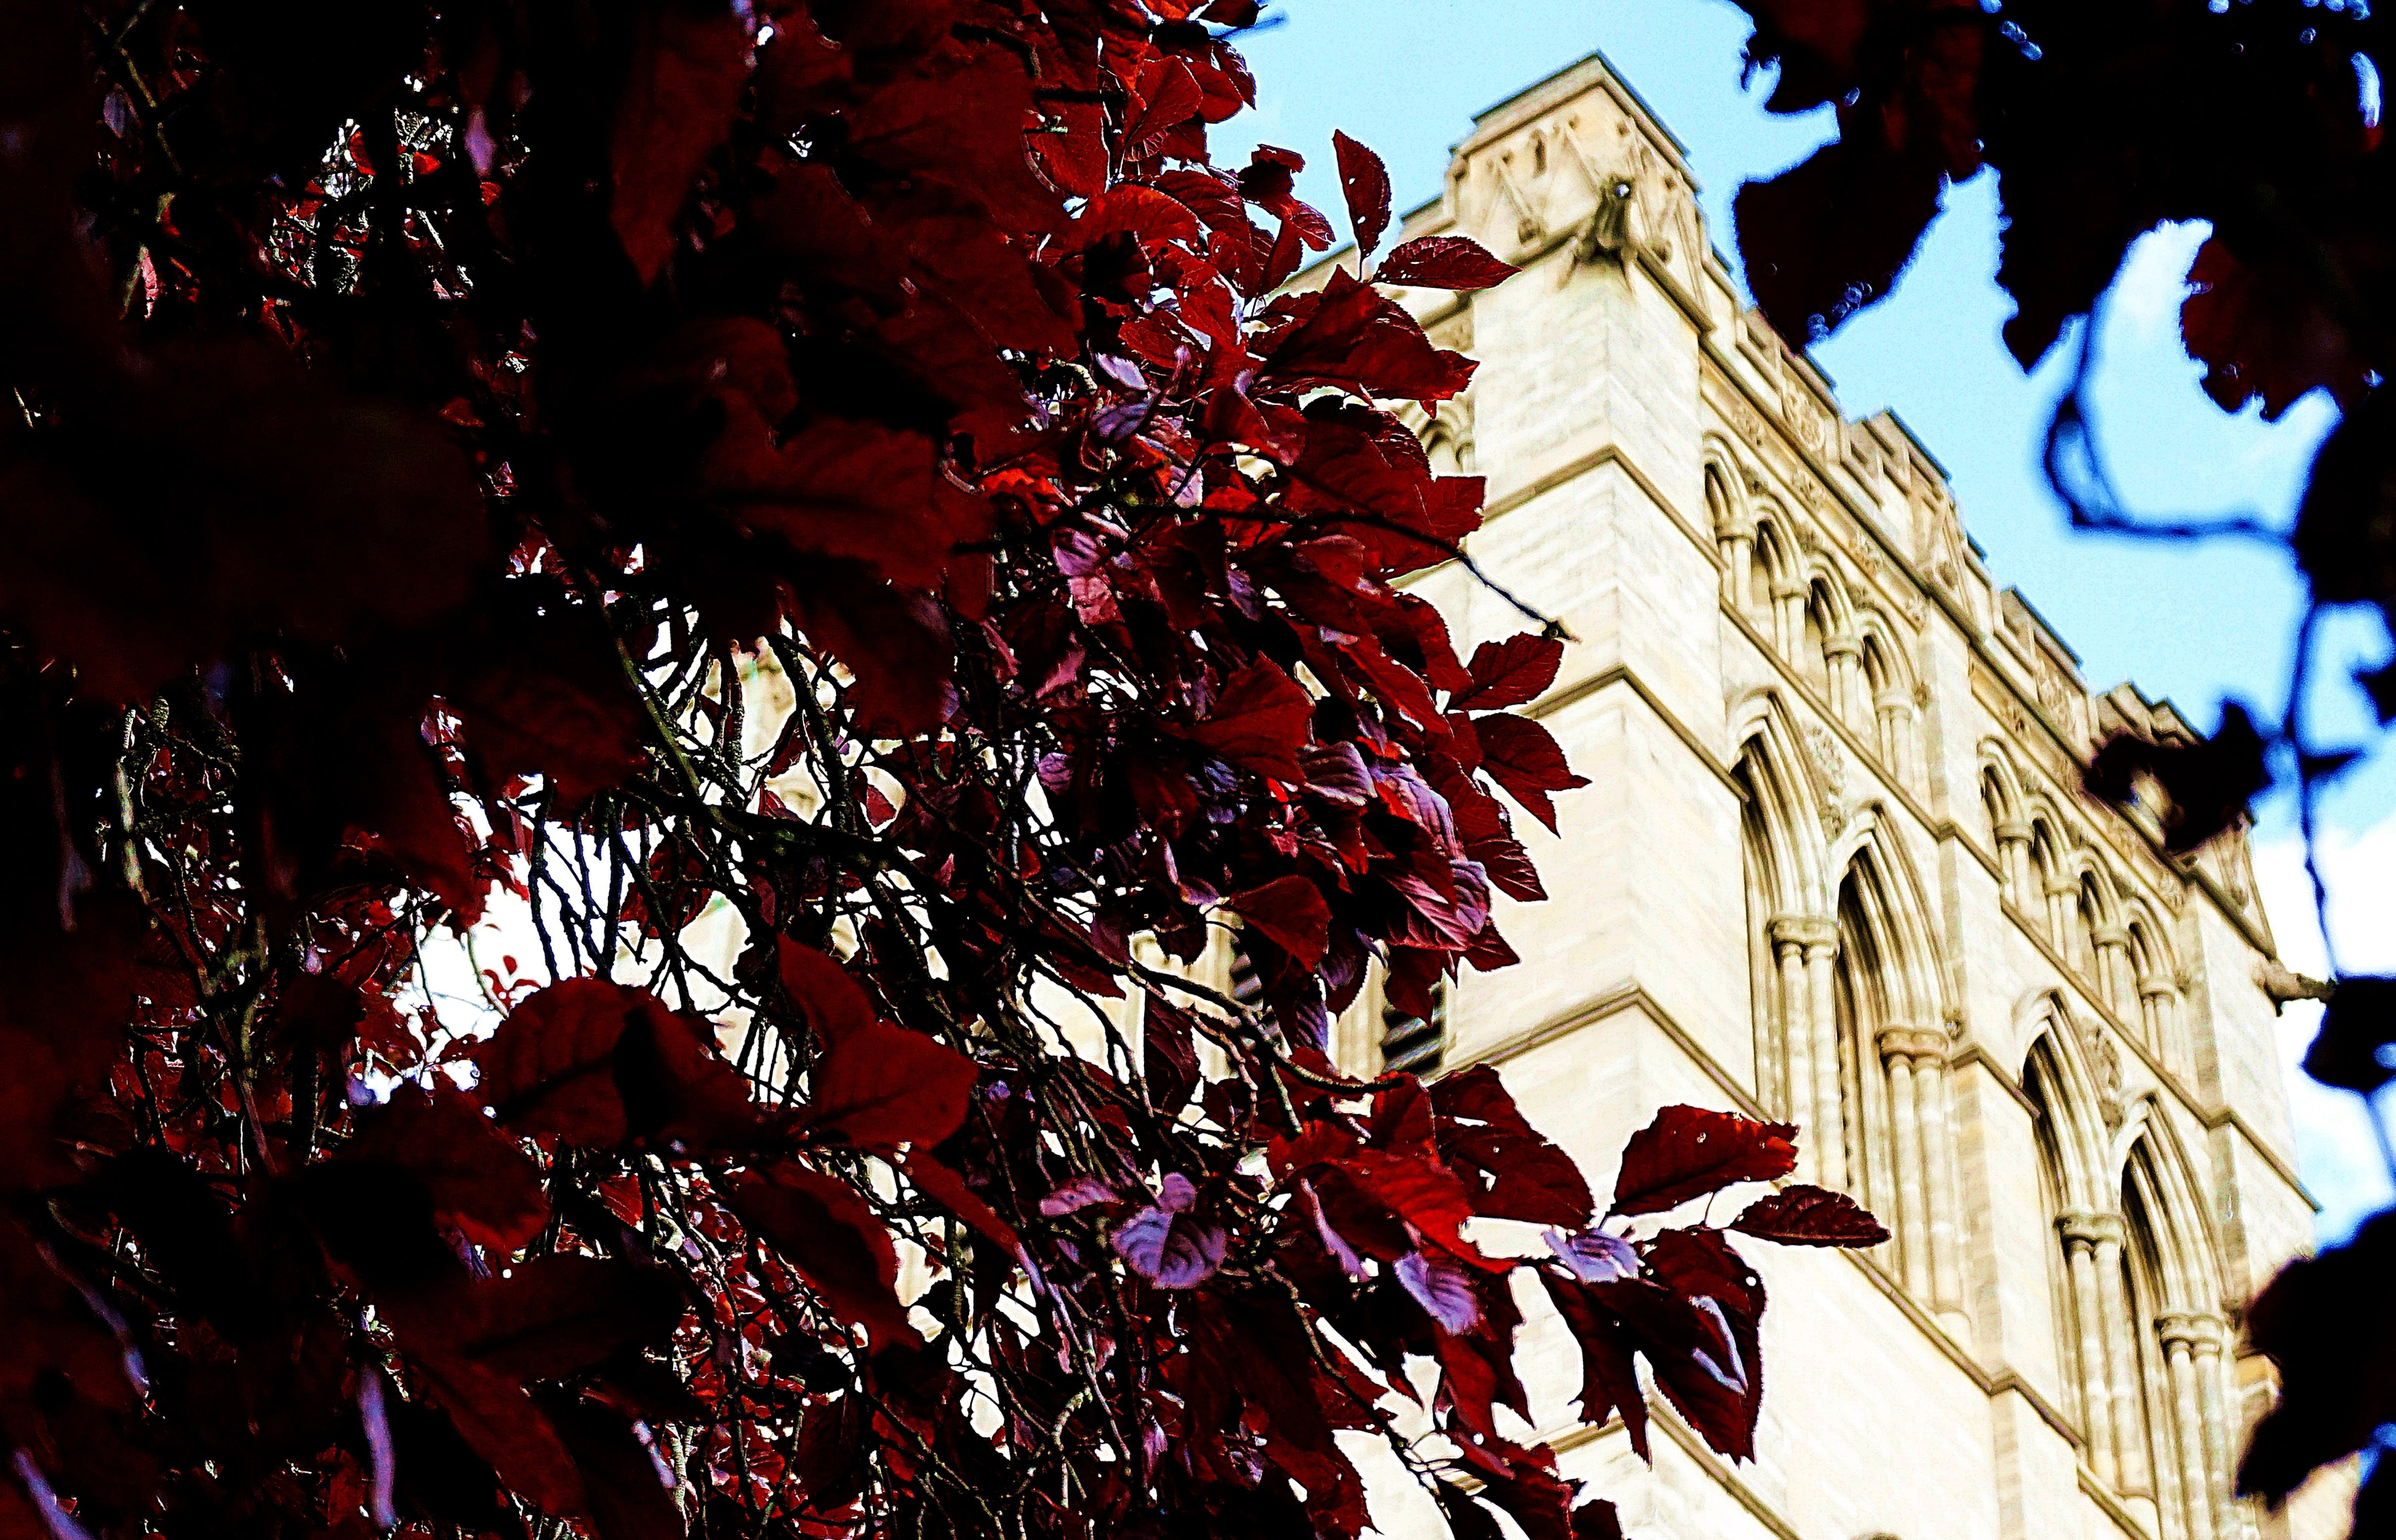 Free stock photo of building, cathedral, church, trees